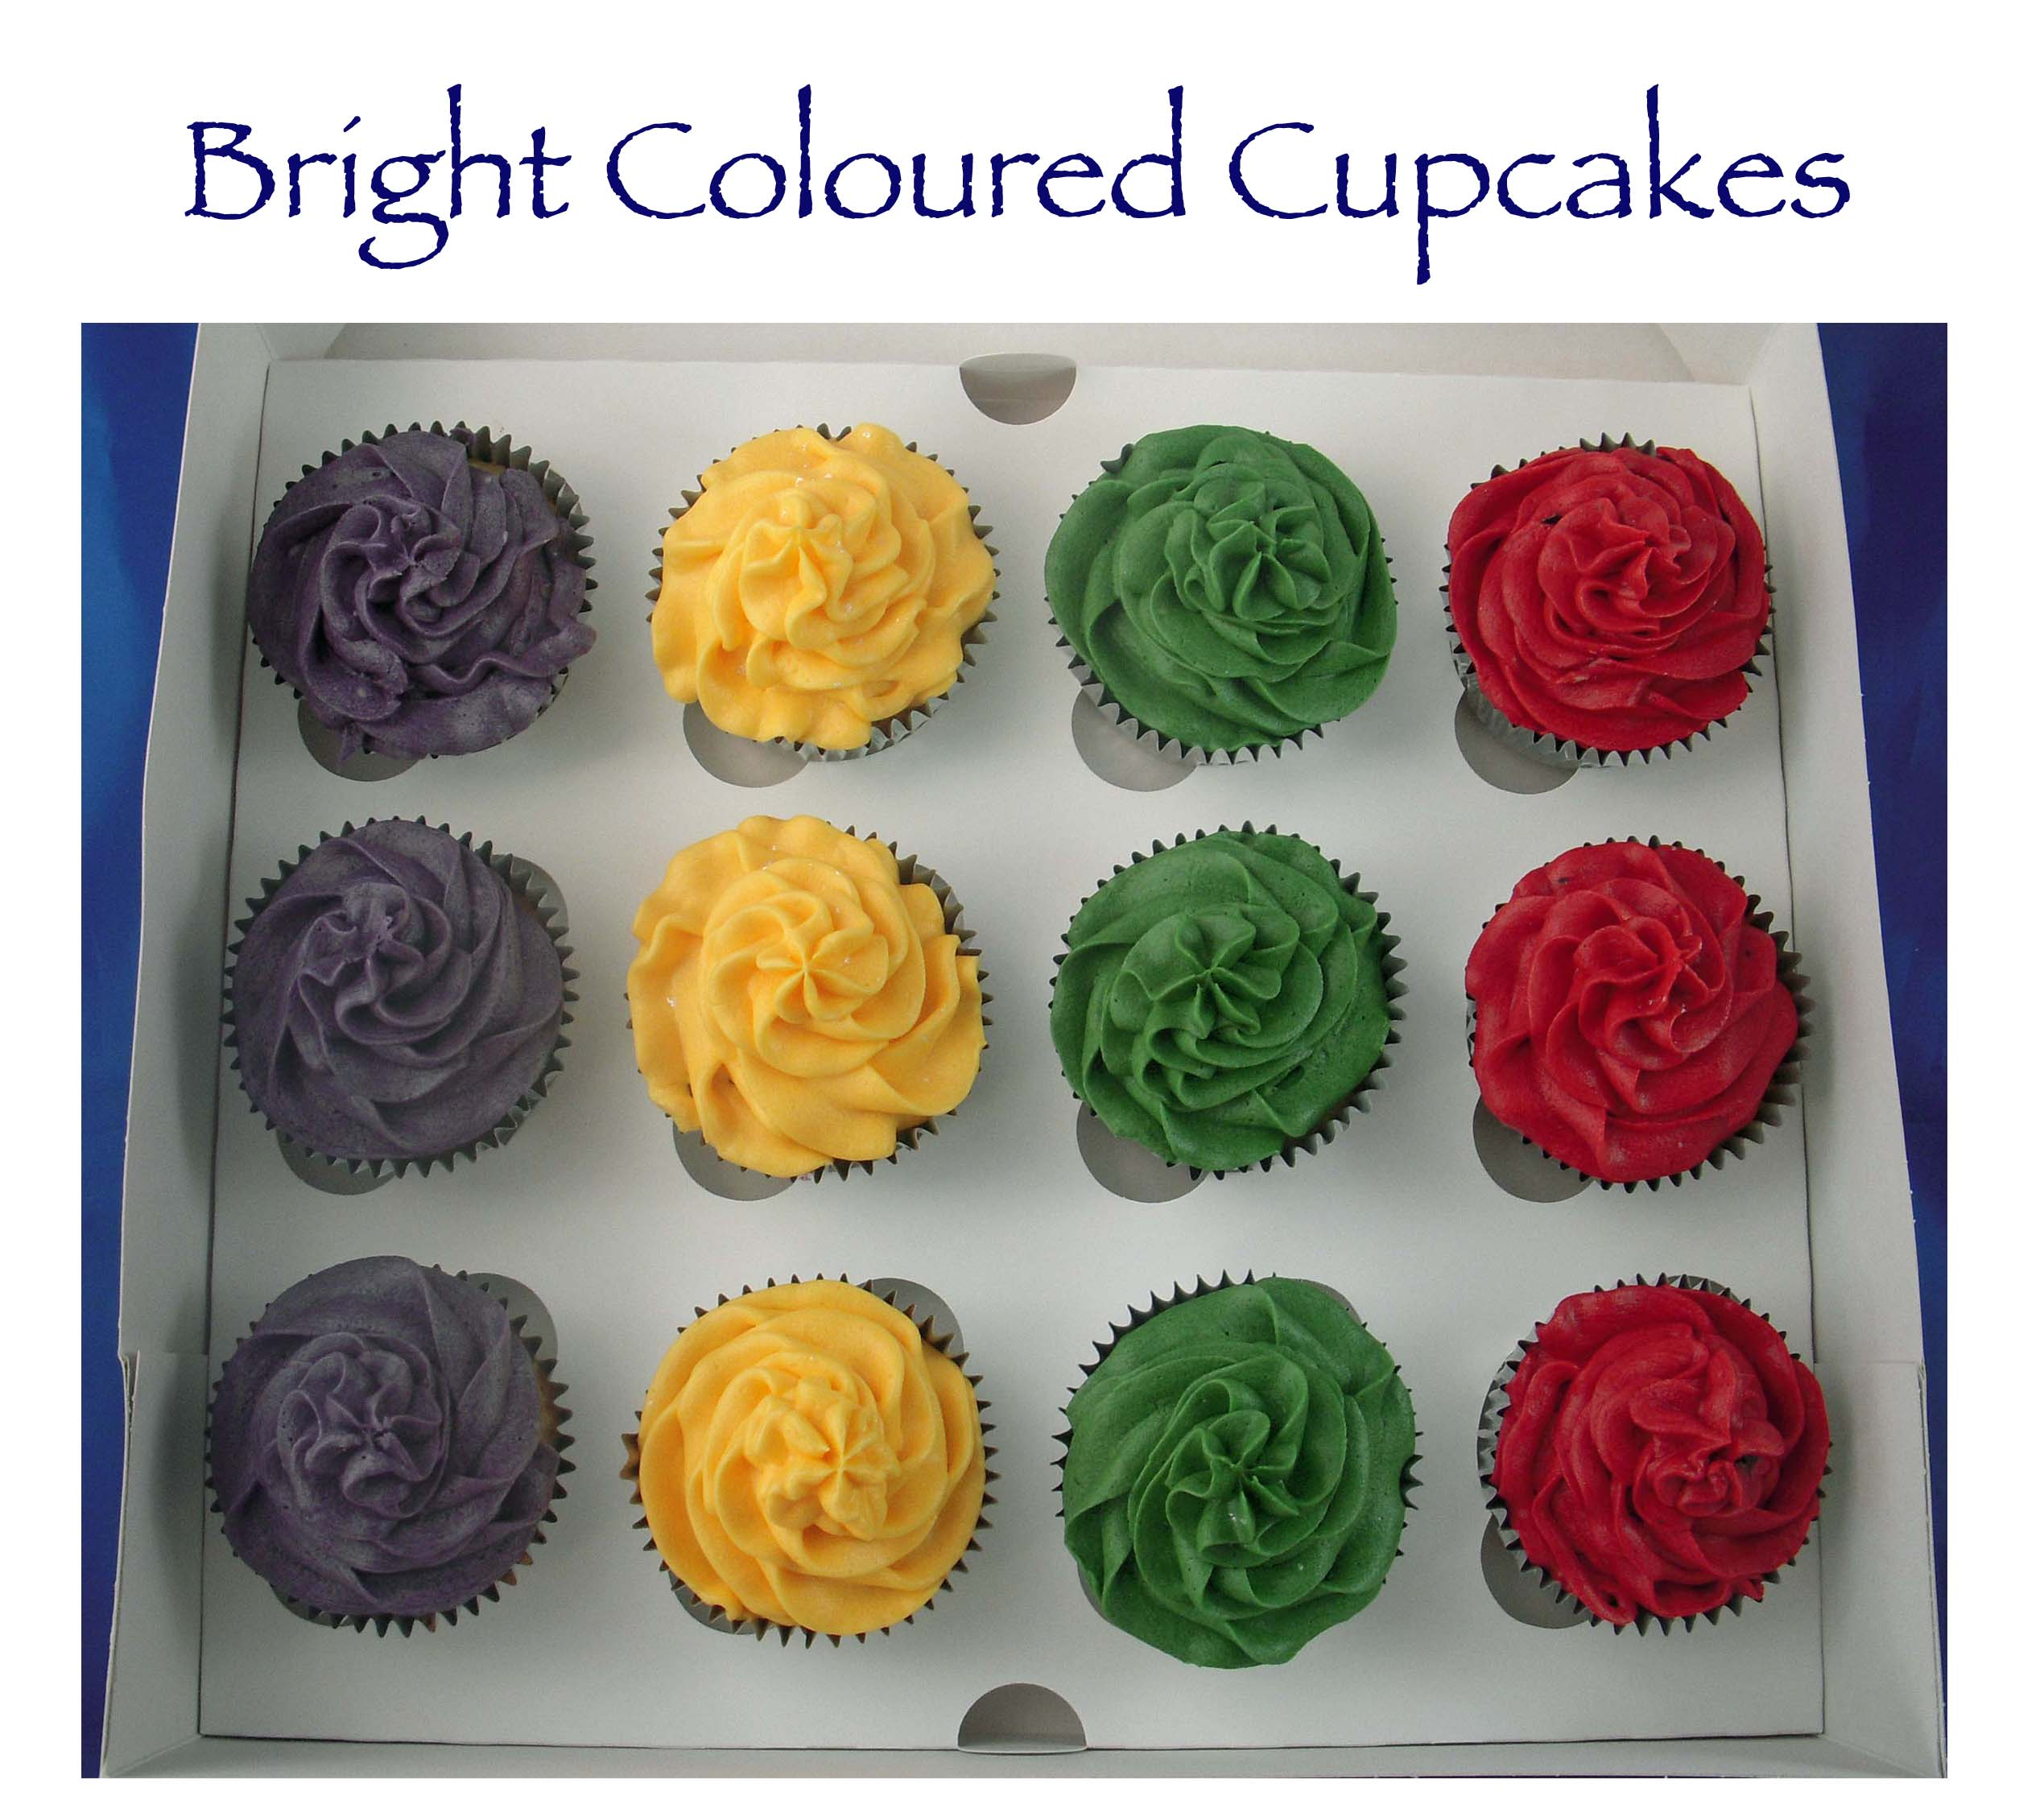 Dora the Explorer brightly coloured cupcakes